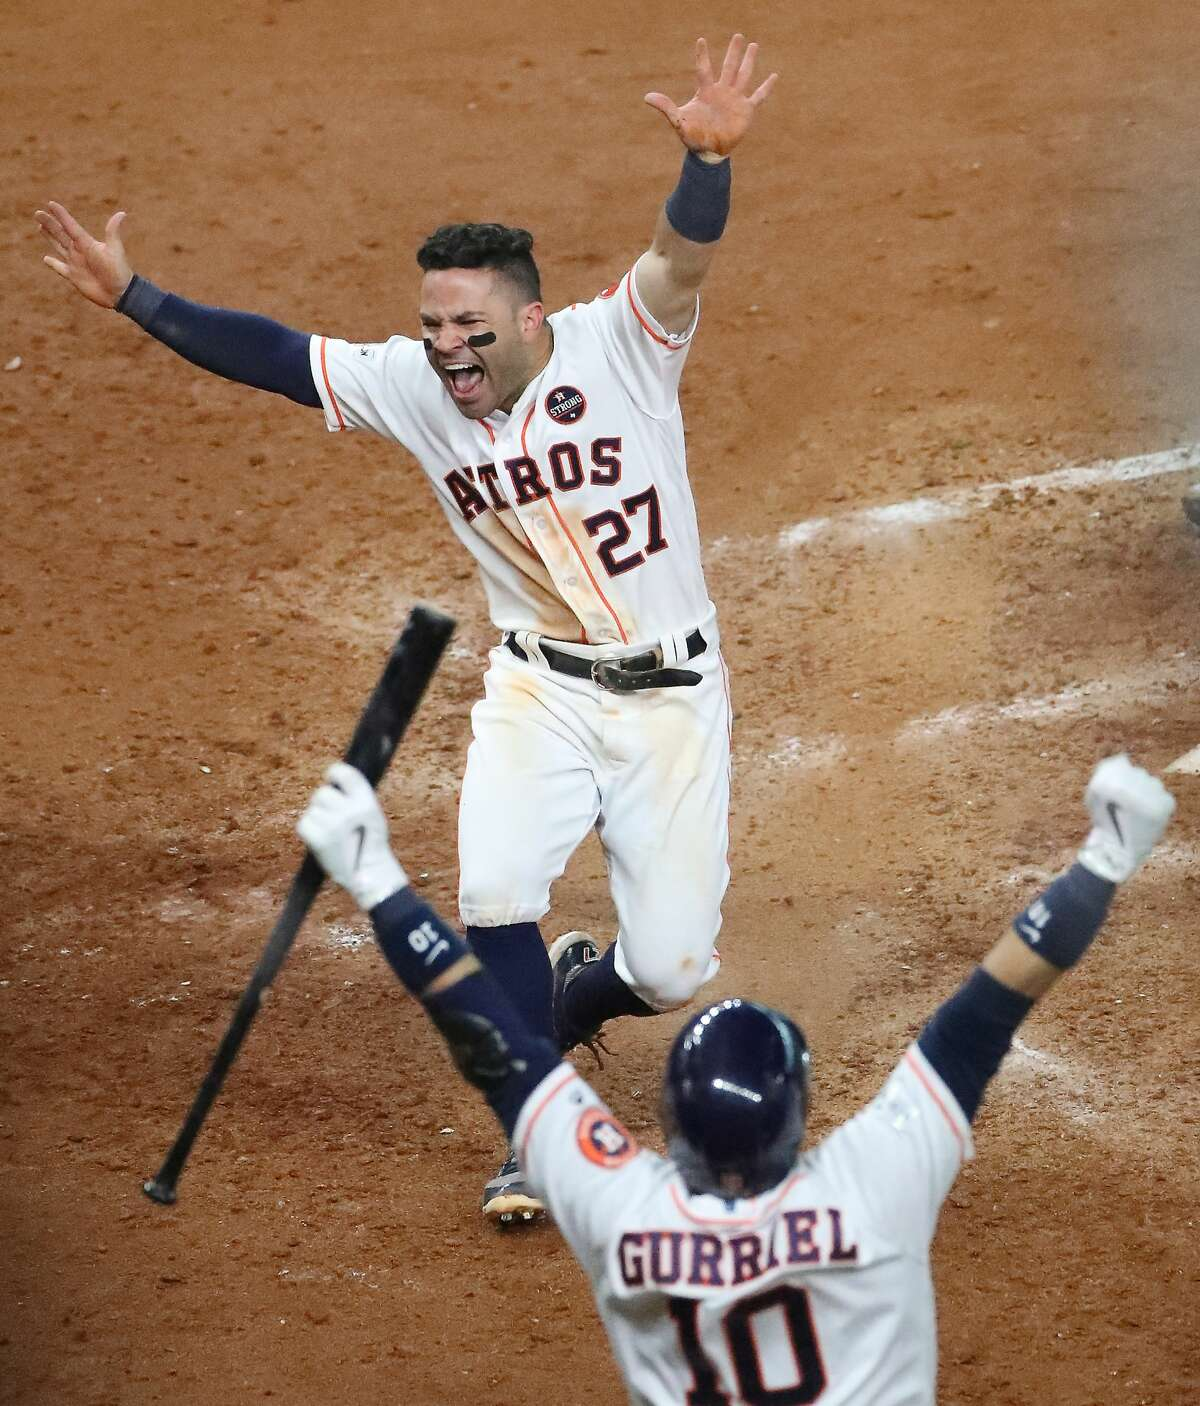 Houston Astros second baseman Jose Altuve (27) scores the winning run after Houston Astros shortstop Carlos Correa (1) hit him in to win the ALCS Game 2 Saturday, Oct. 14, 2017, in Houston.